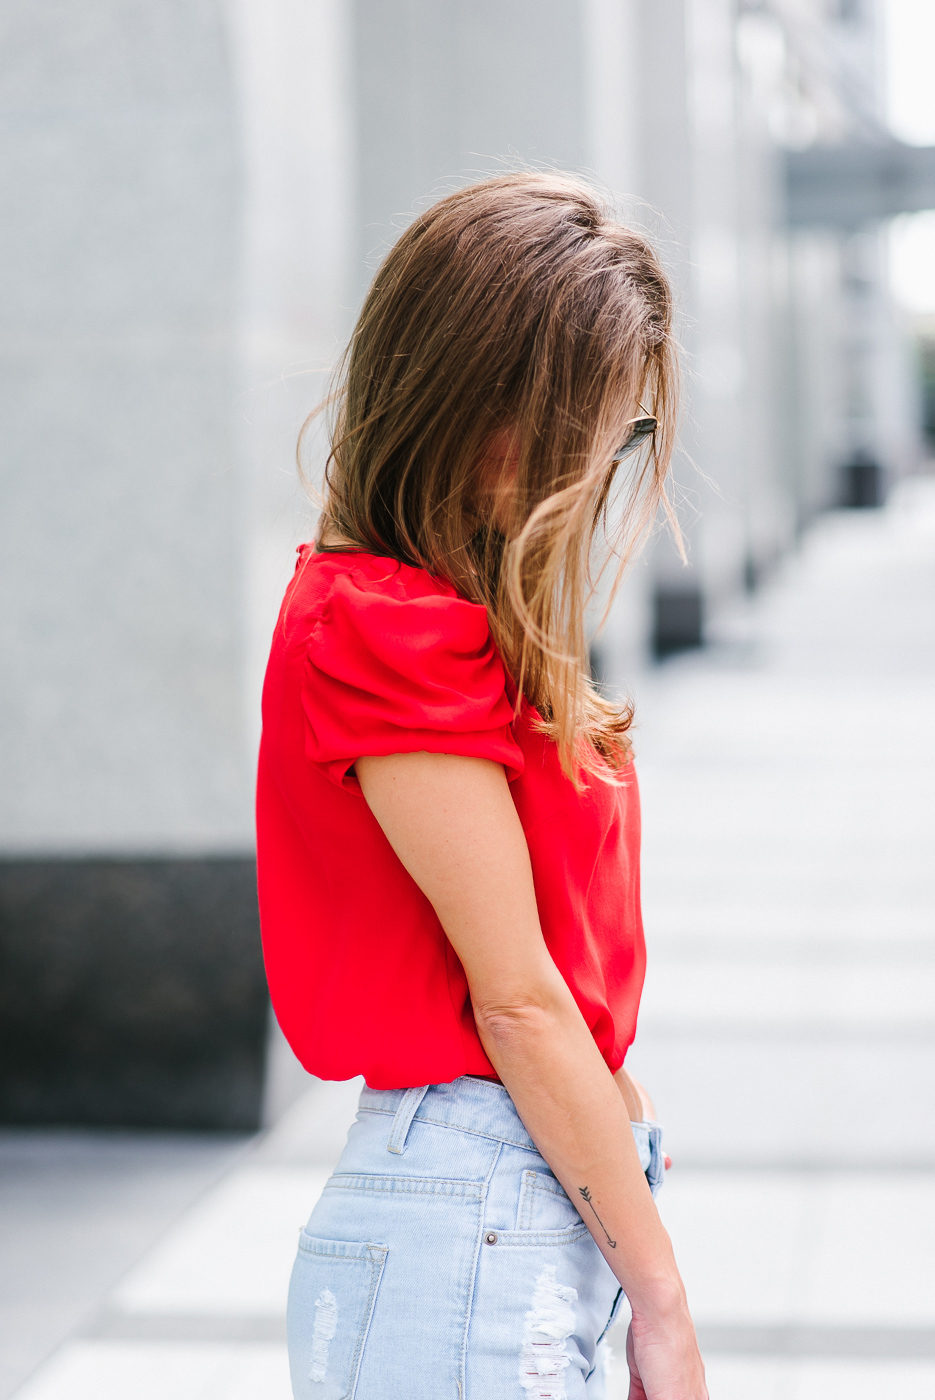 AshLee Frazier wearing her mom jeans as street style